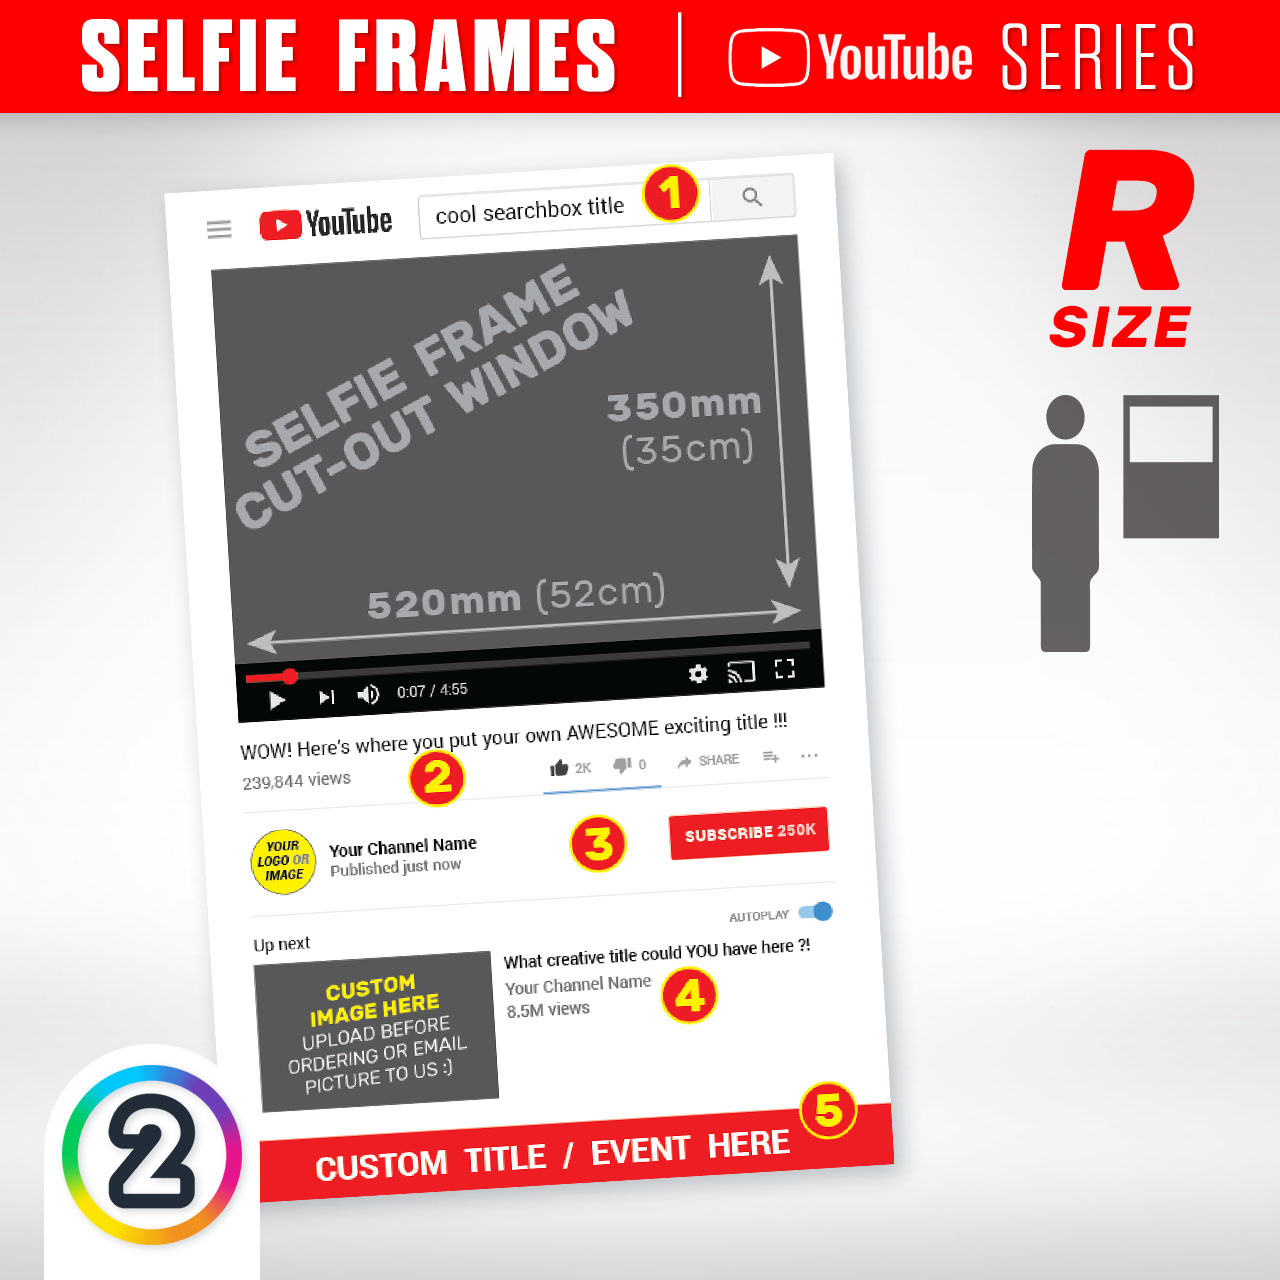 Buy YouTube Selfie Prop Frames online Australia - from $65.00 | D2P (AU)